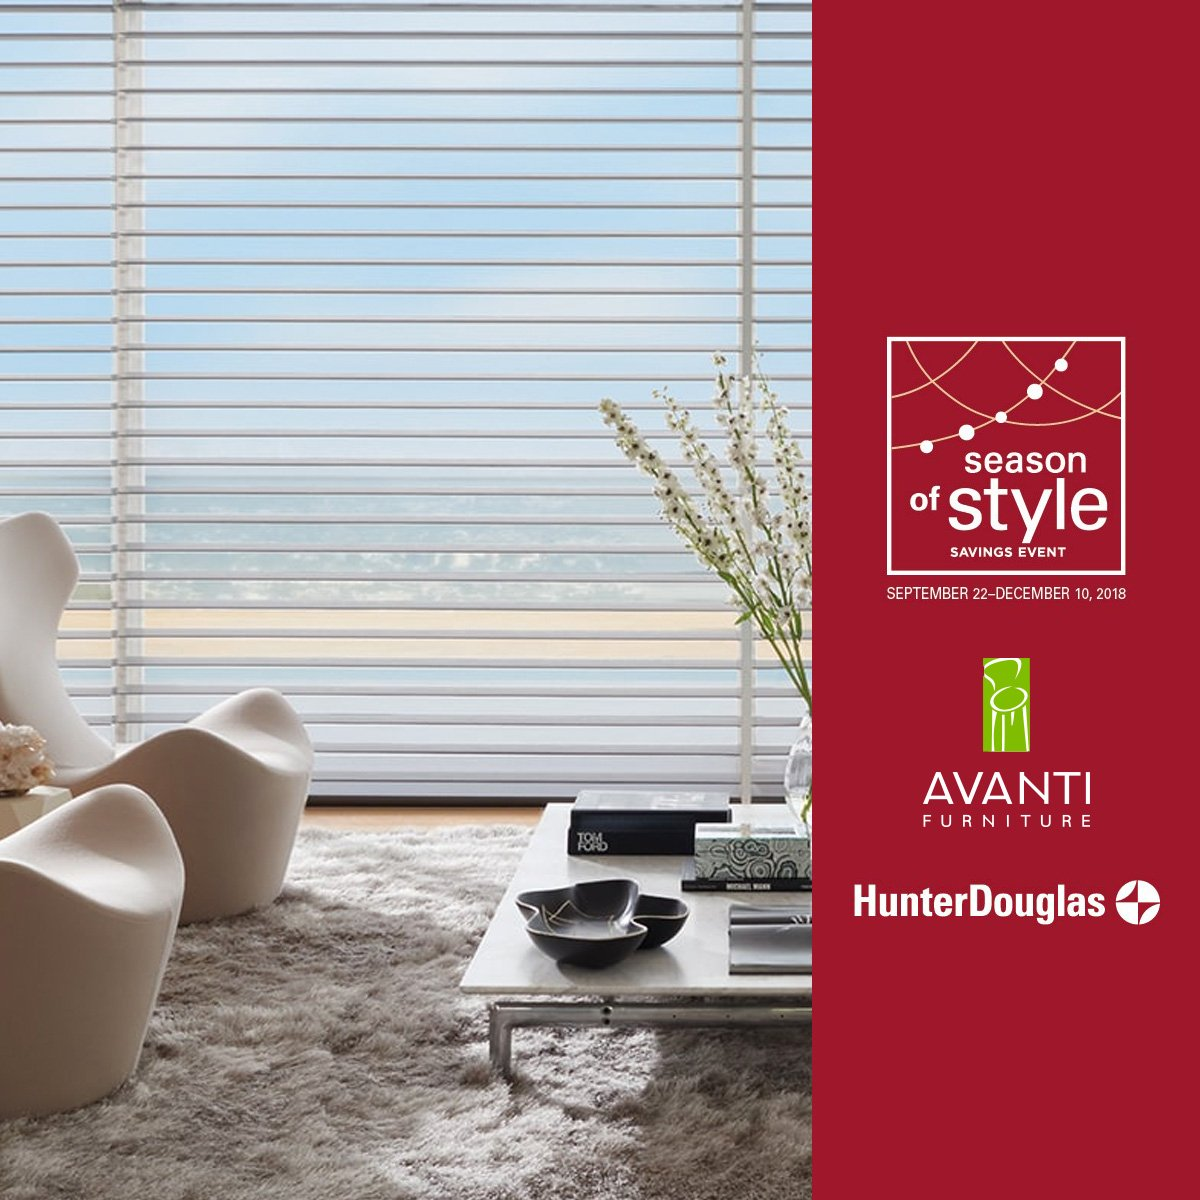 Genial ... Youu0027ll Get A $100 Rebate On Qualifying Purchases, 9/22 Through  12/10/18.* Avanti Furniture Official Distributor In Weston .pic.twitter.com/72HJmd058R